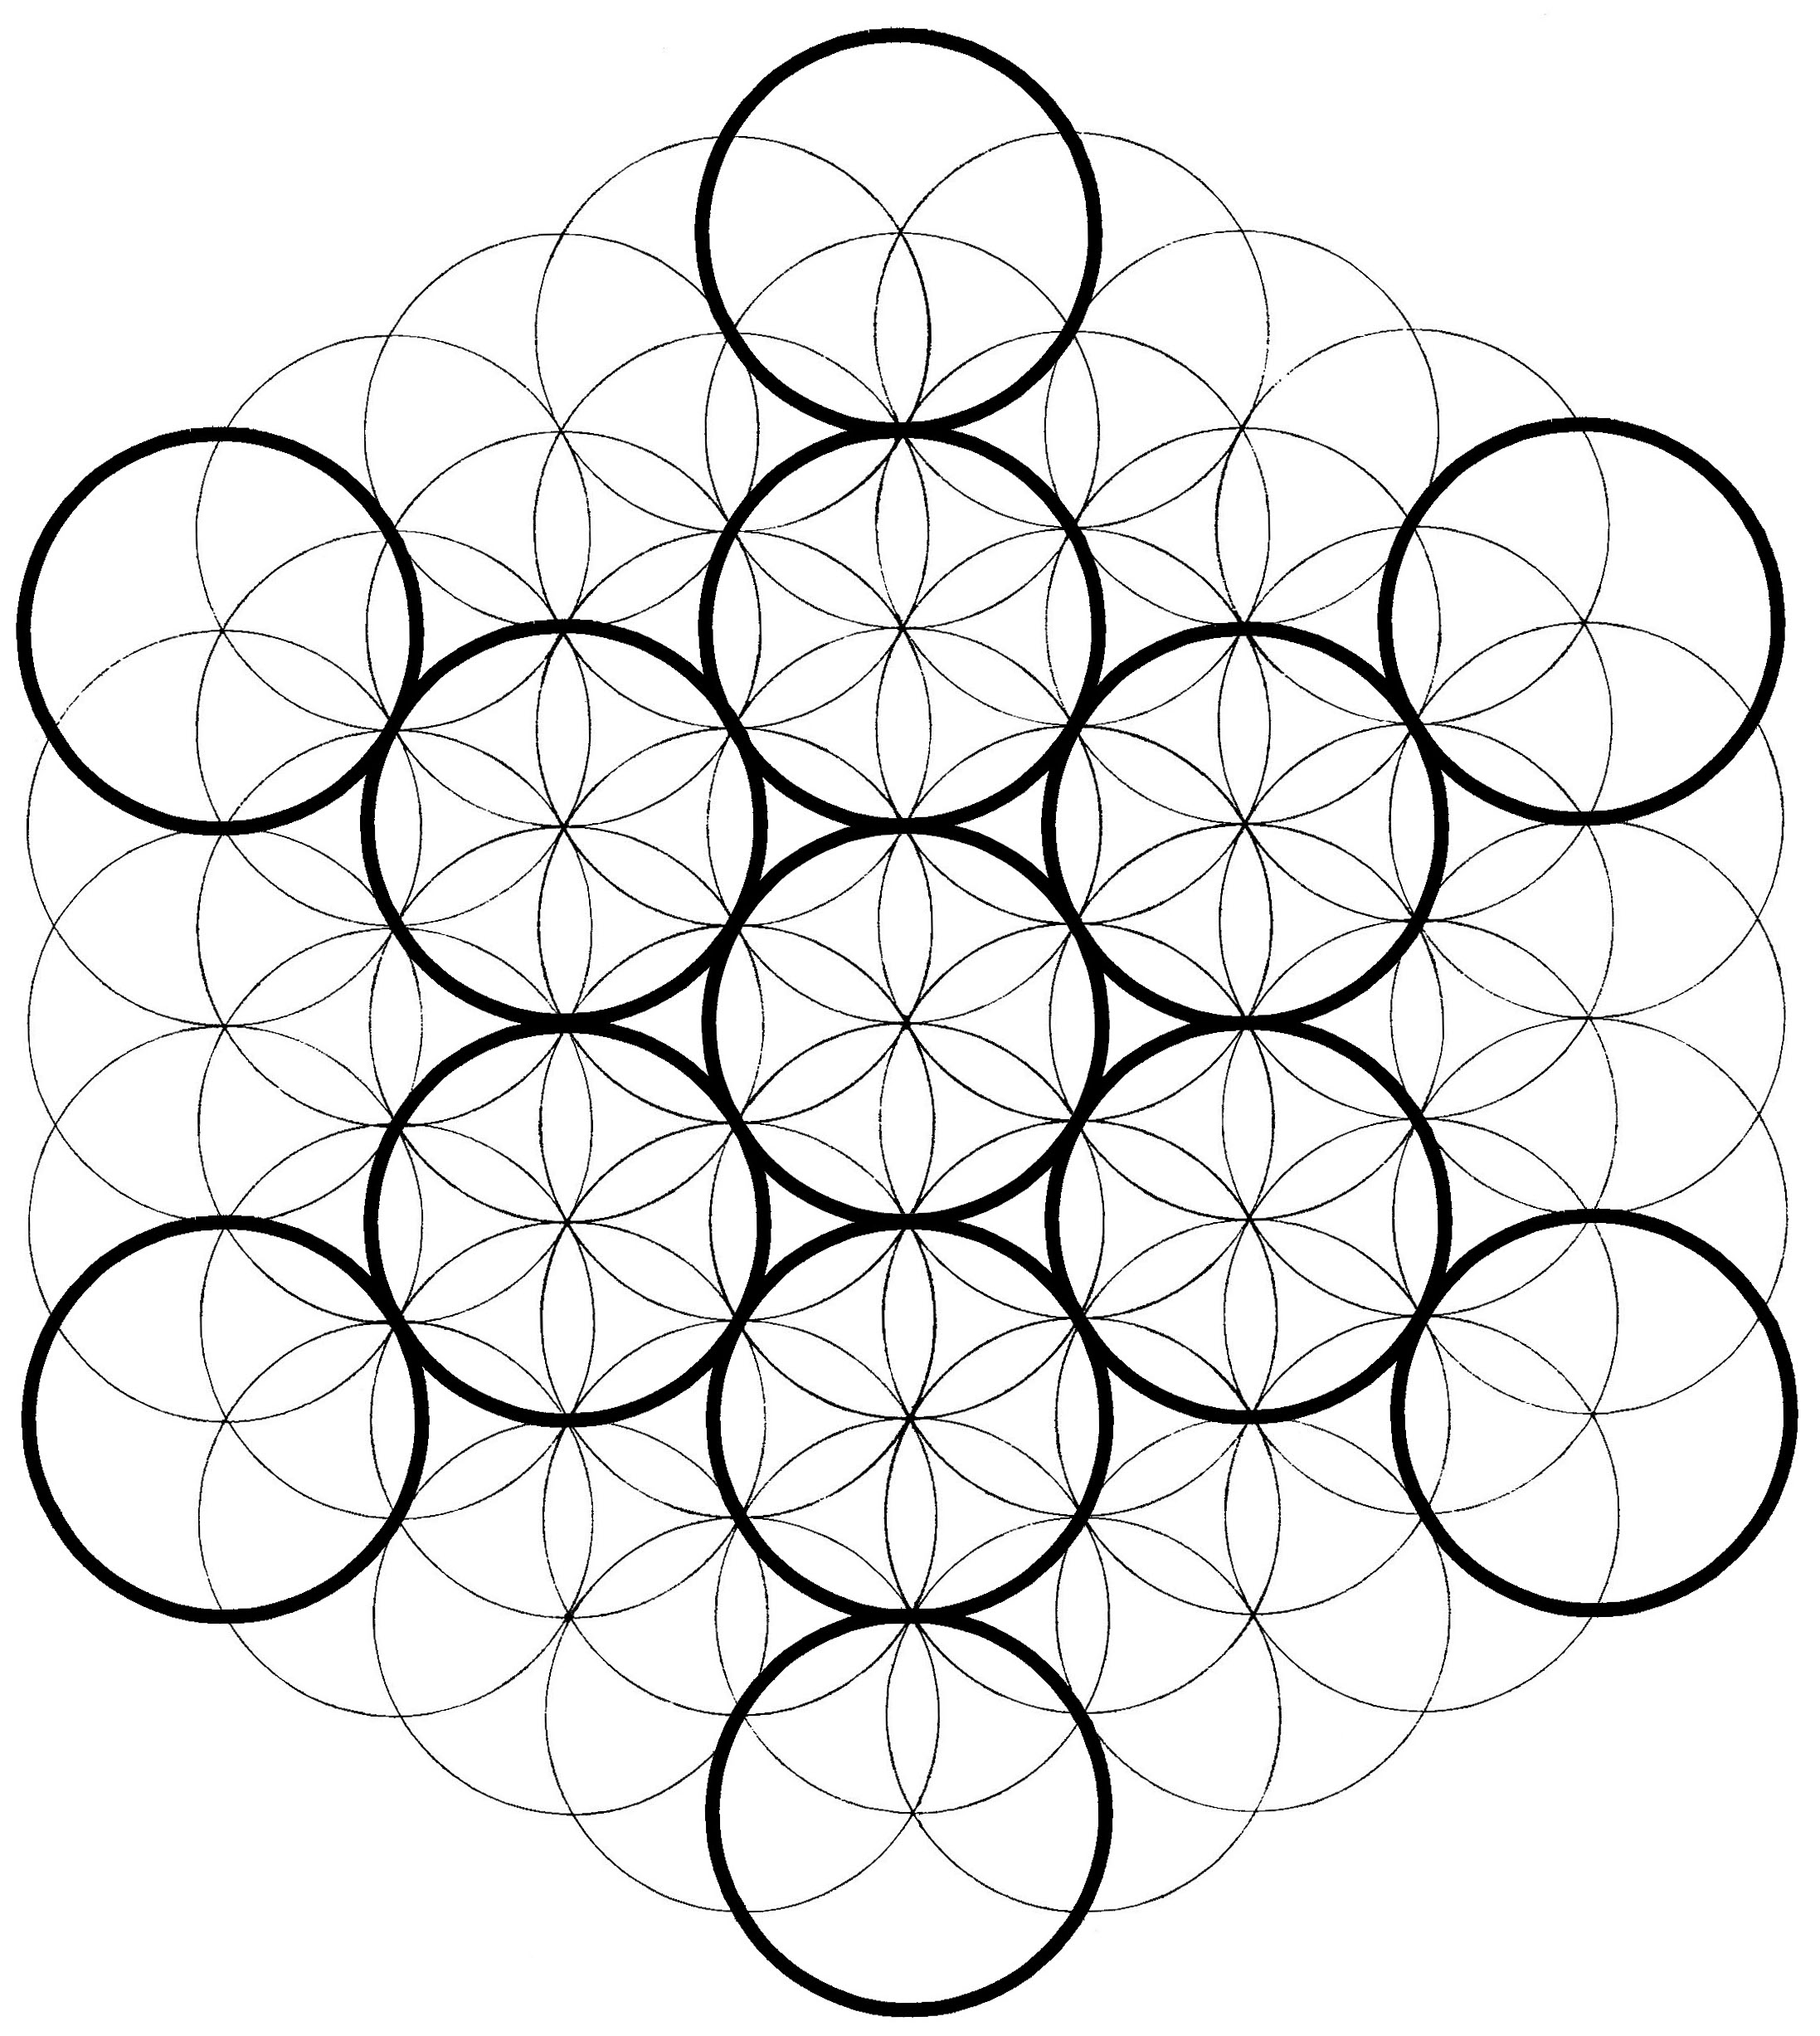 Metatron s cube how to draw it the chemical marriage for How to draw the flower of life step by step